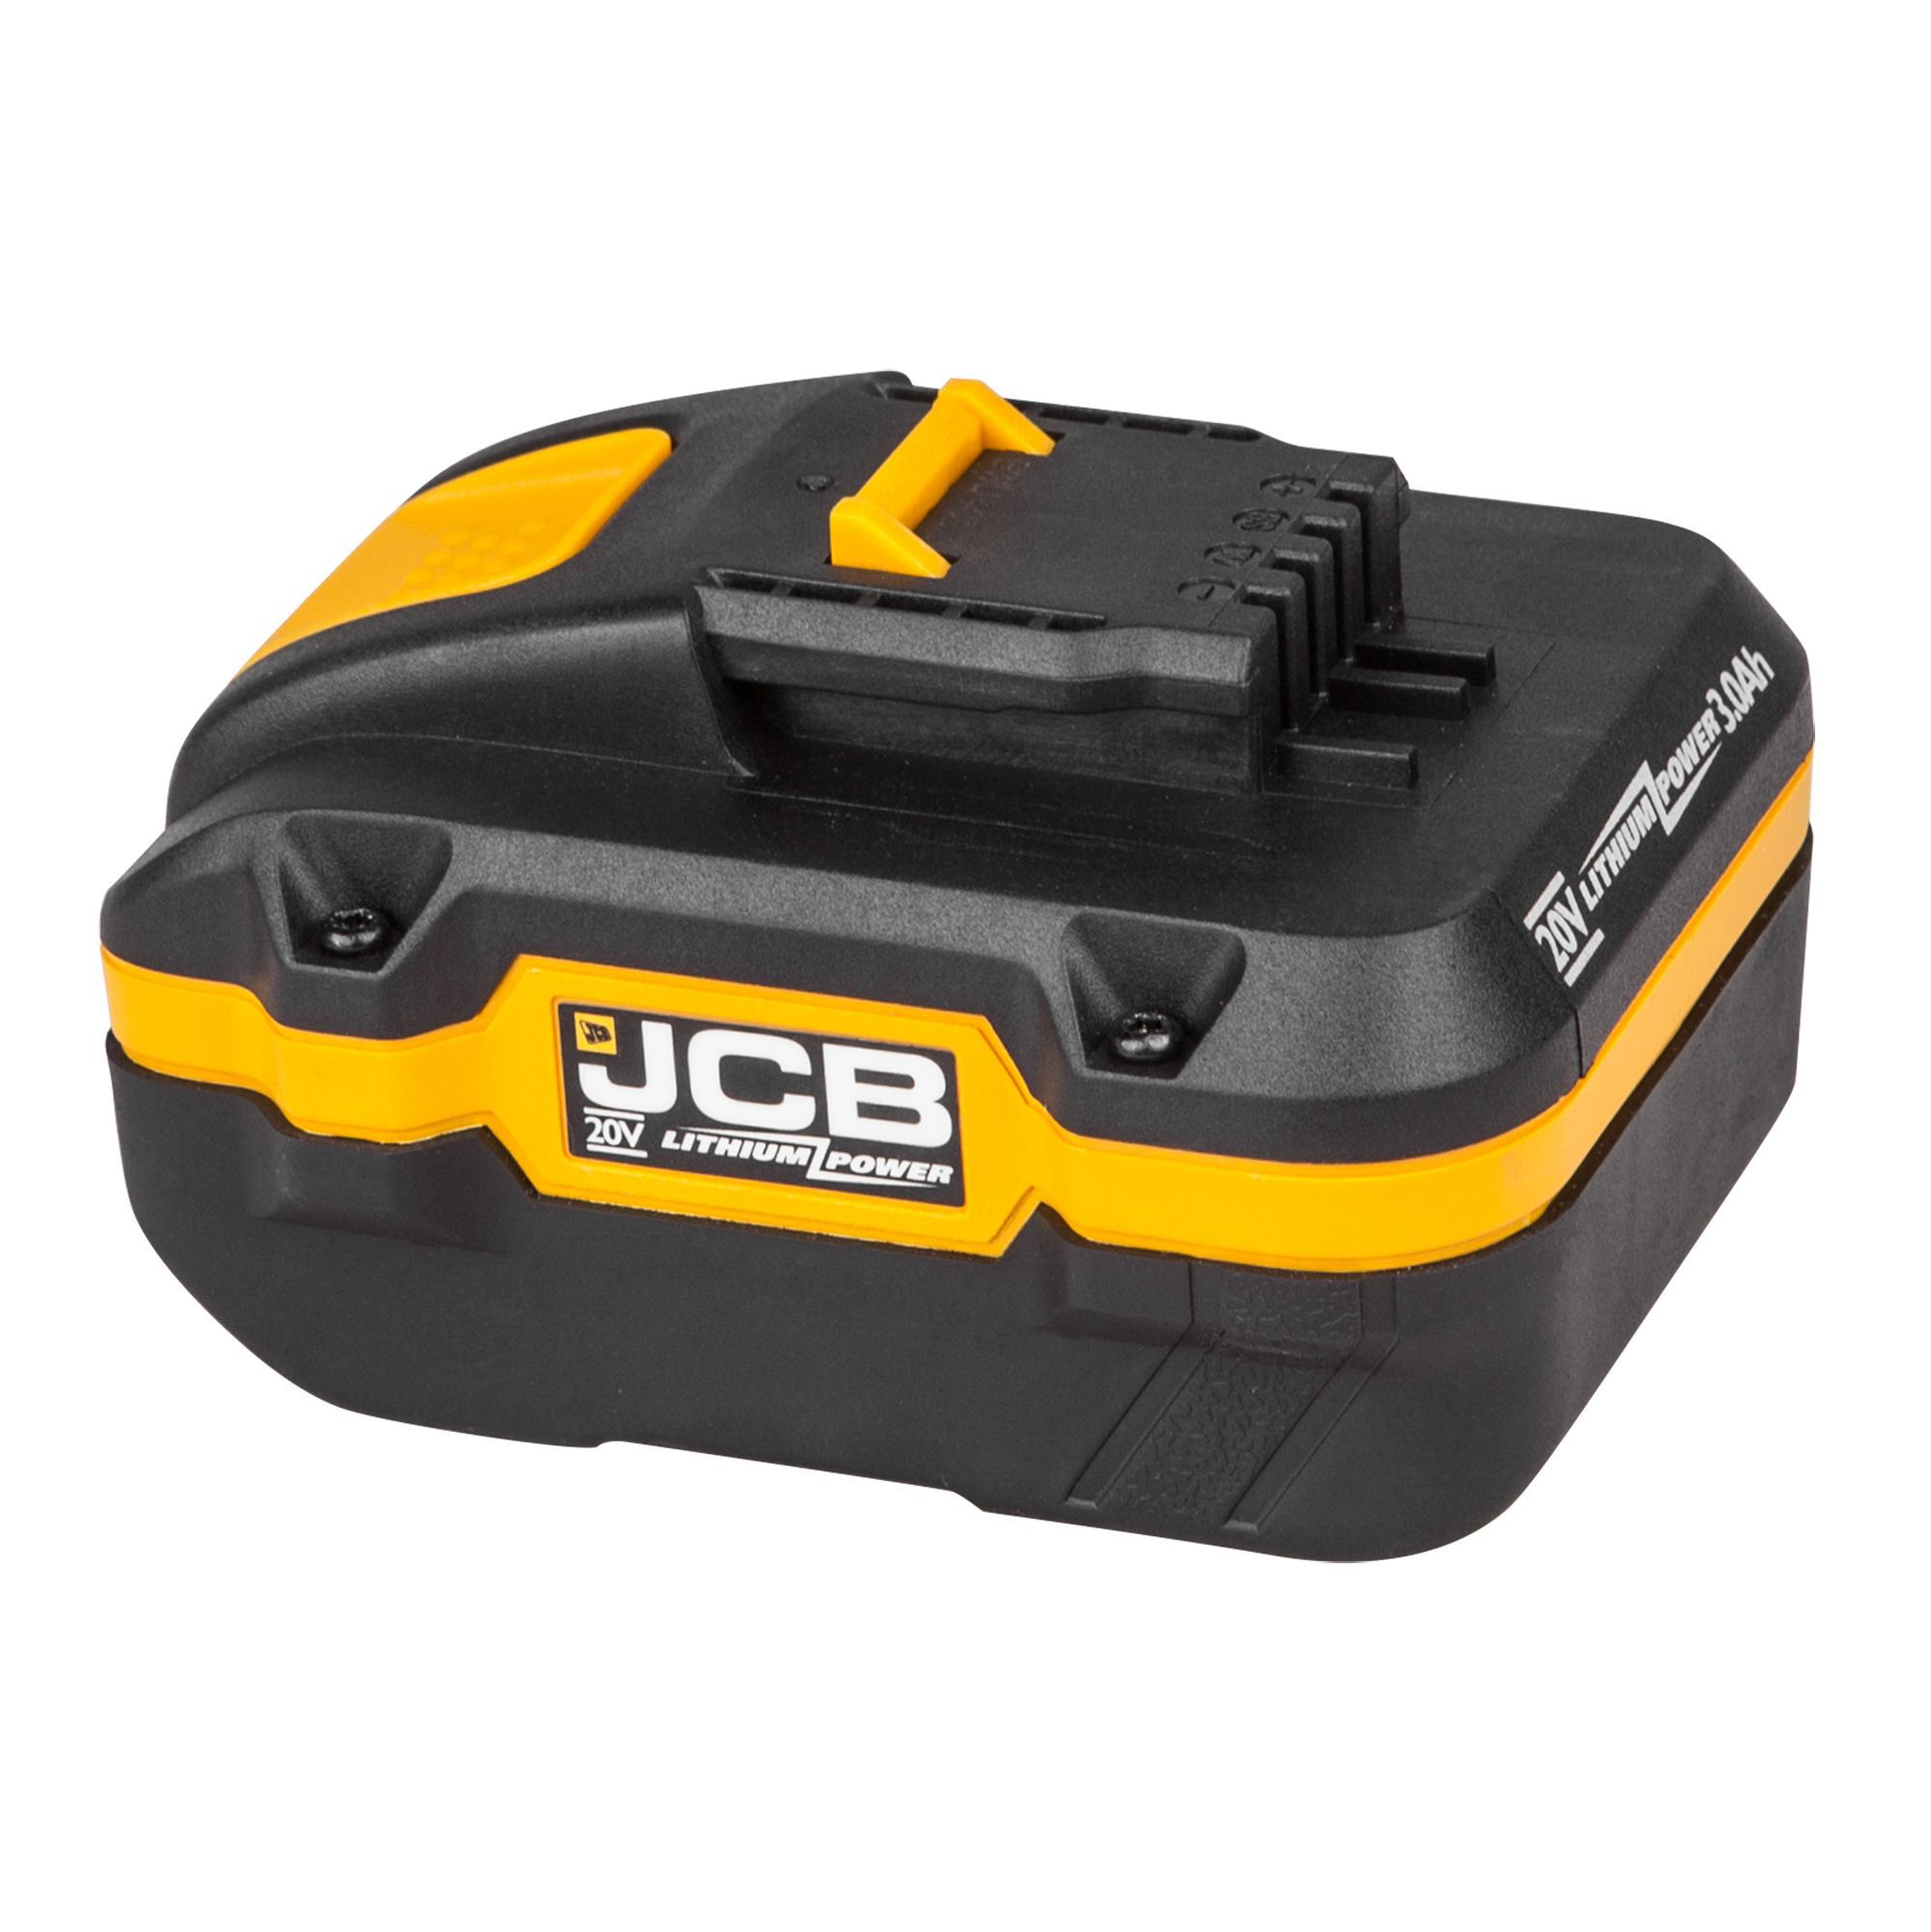 Jcb 20v Li Ion 3ah Battery Departments Tradepoint